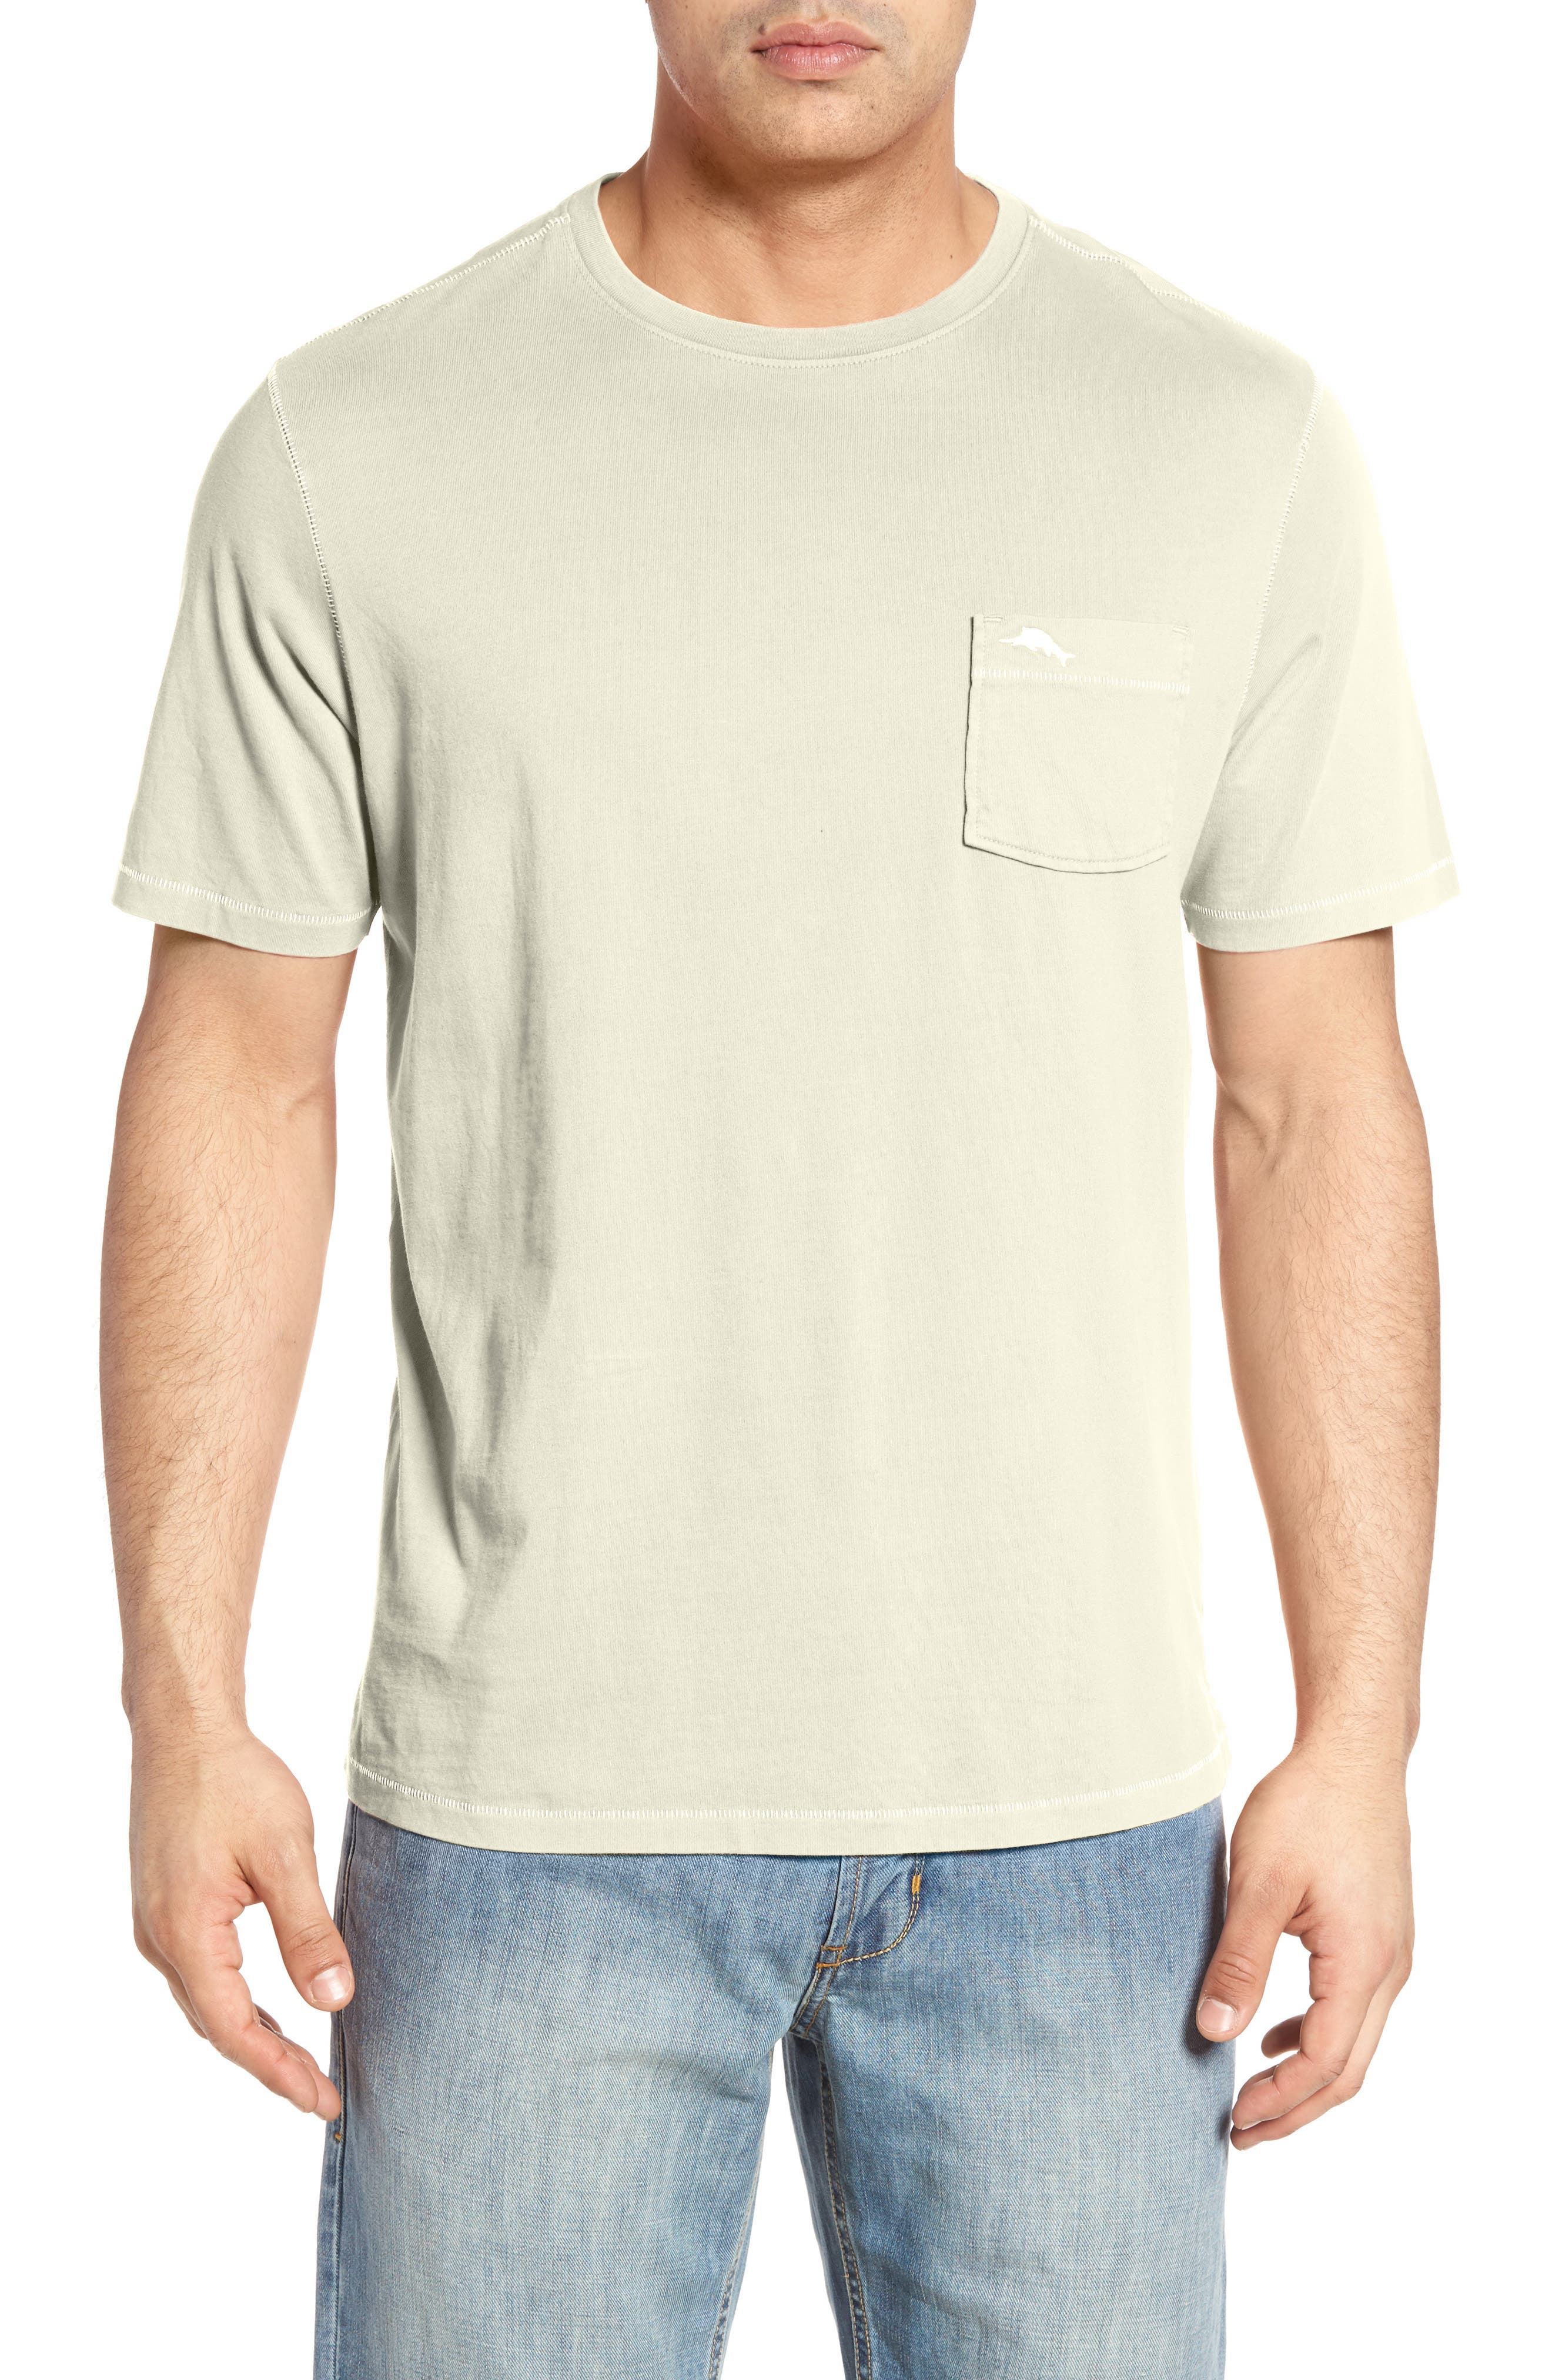 'New Bahama Reef' Island Modern Fit Pima Cotton Pocket T-Shirt,                             Main thumbnail 1, color,                             Coconut